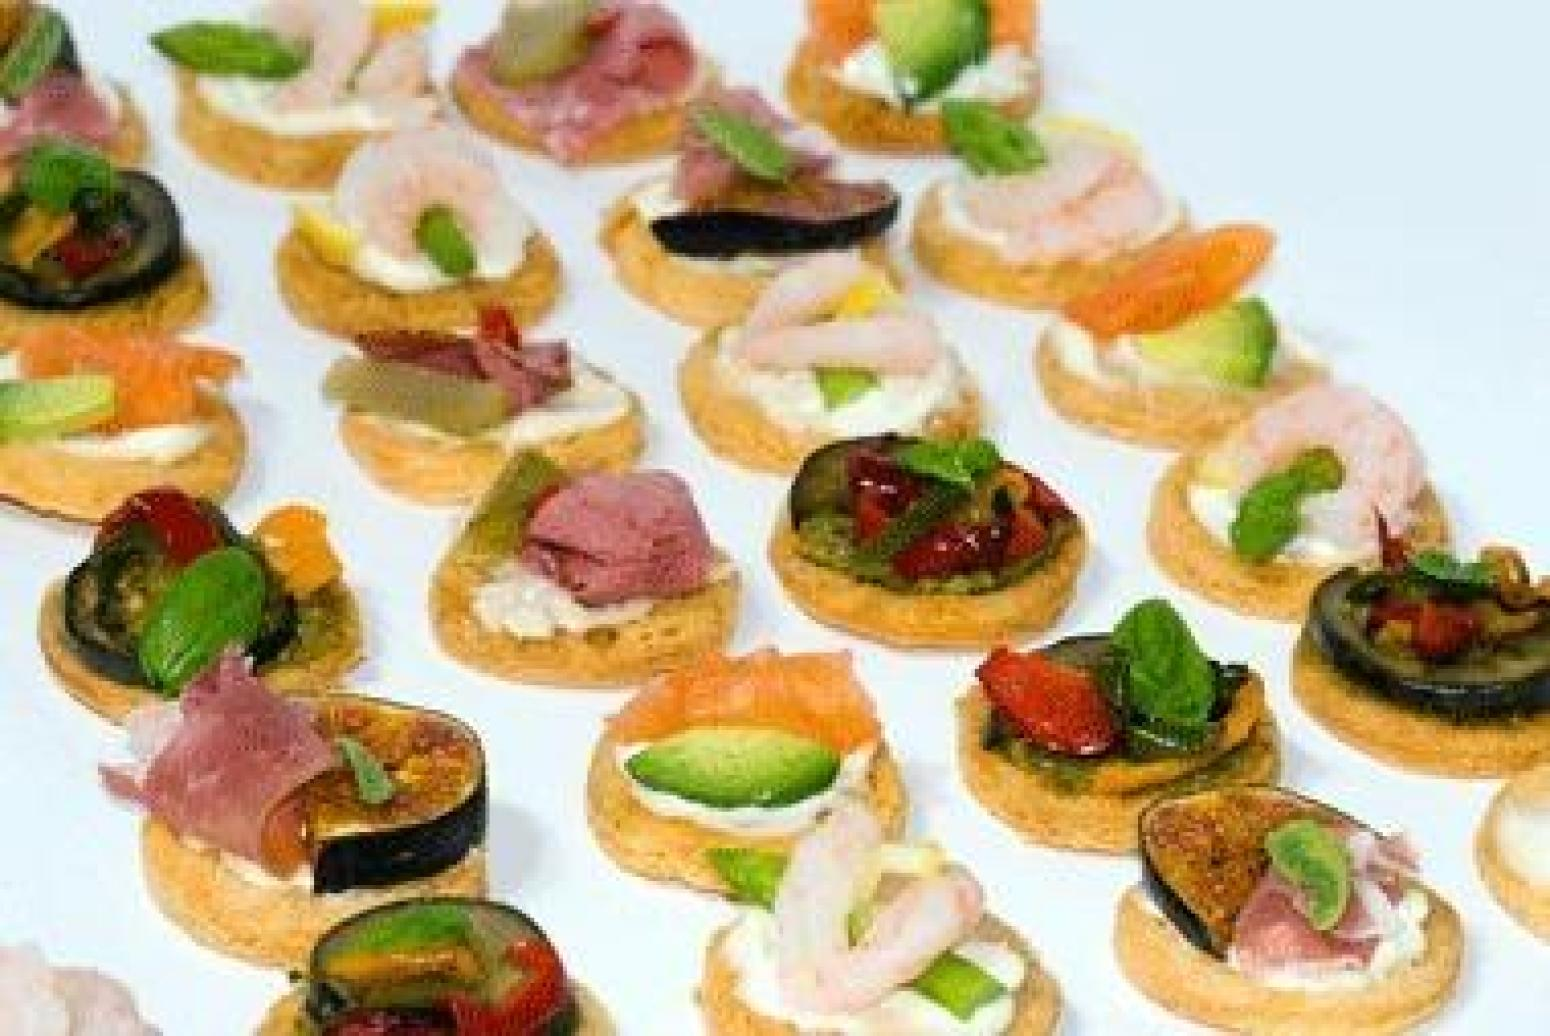 Canap s recipe 101 just a pinch recipes for Canape cookbook